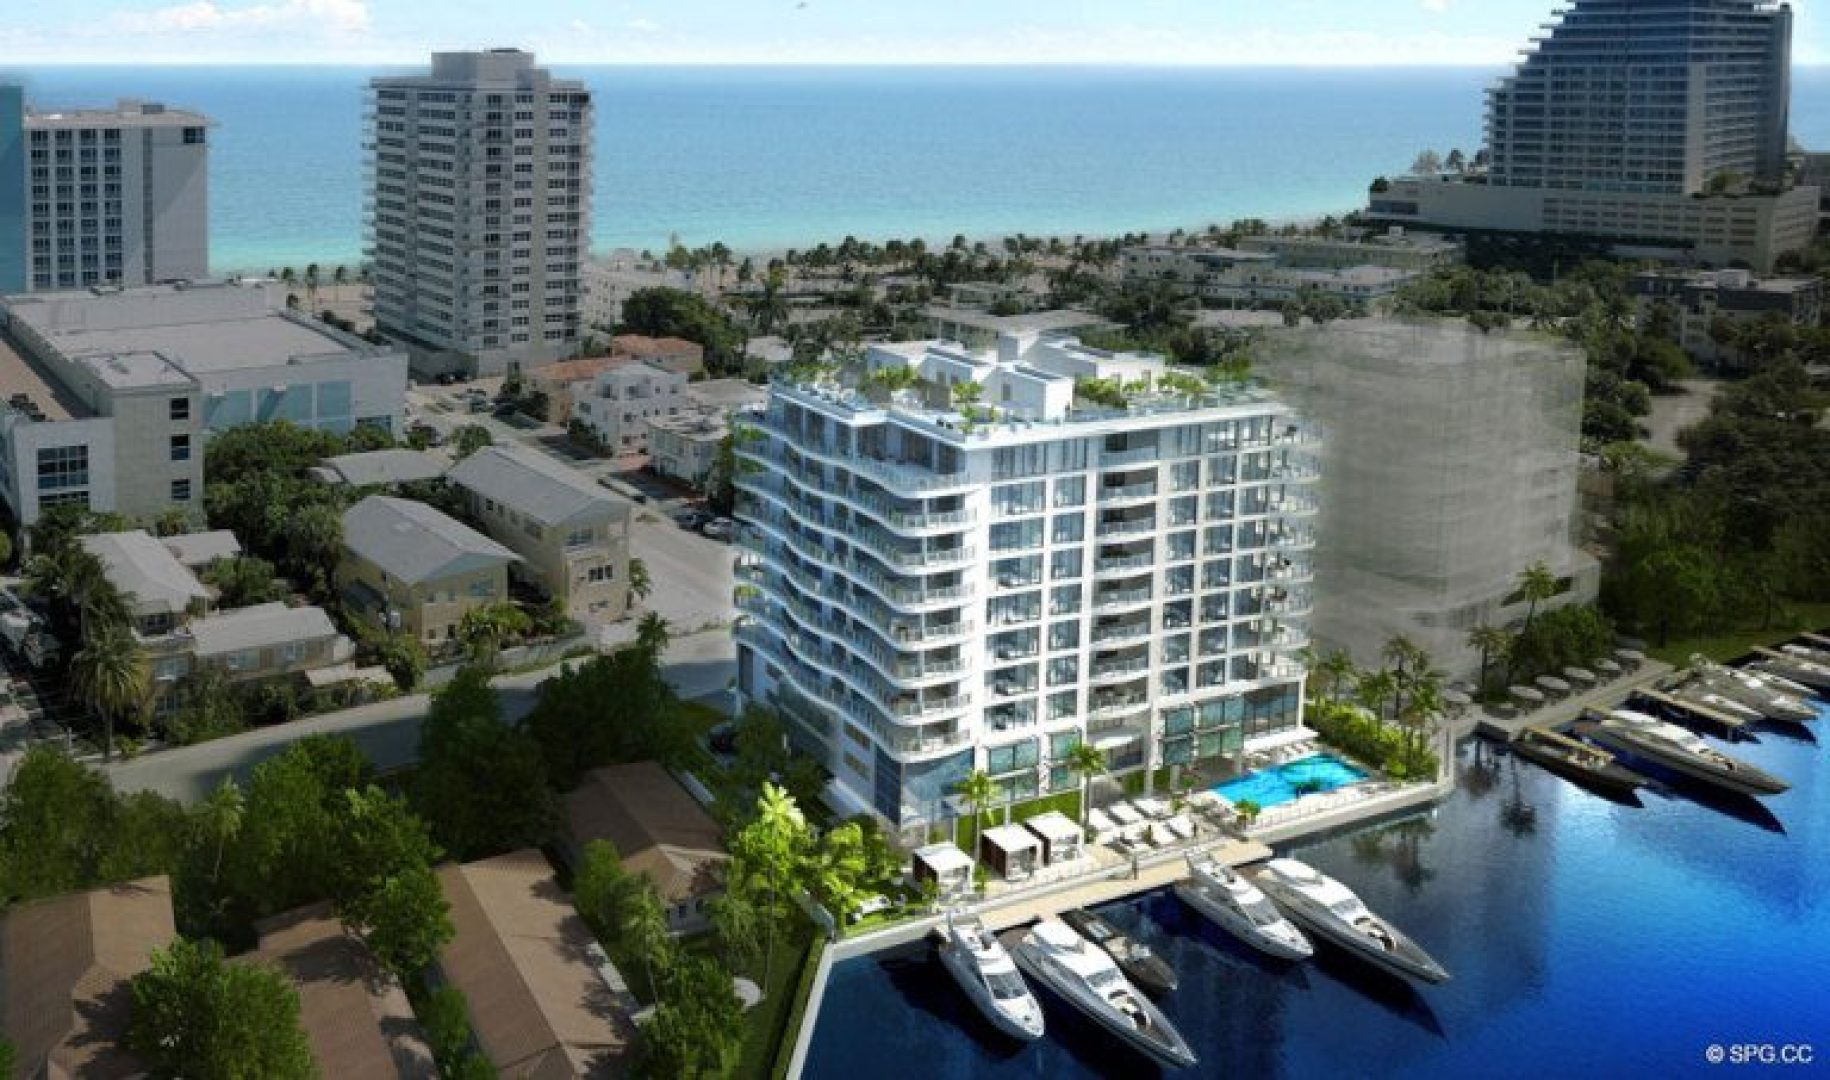 Aerial View of 321 at Water's Edge, Luxury Waterfront Condos in Fort Lauderdale, Florida 33304